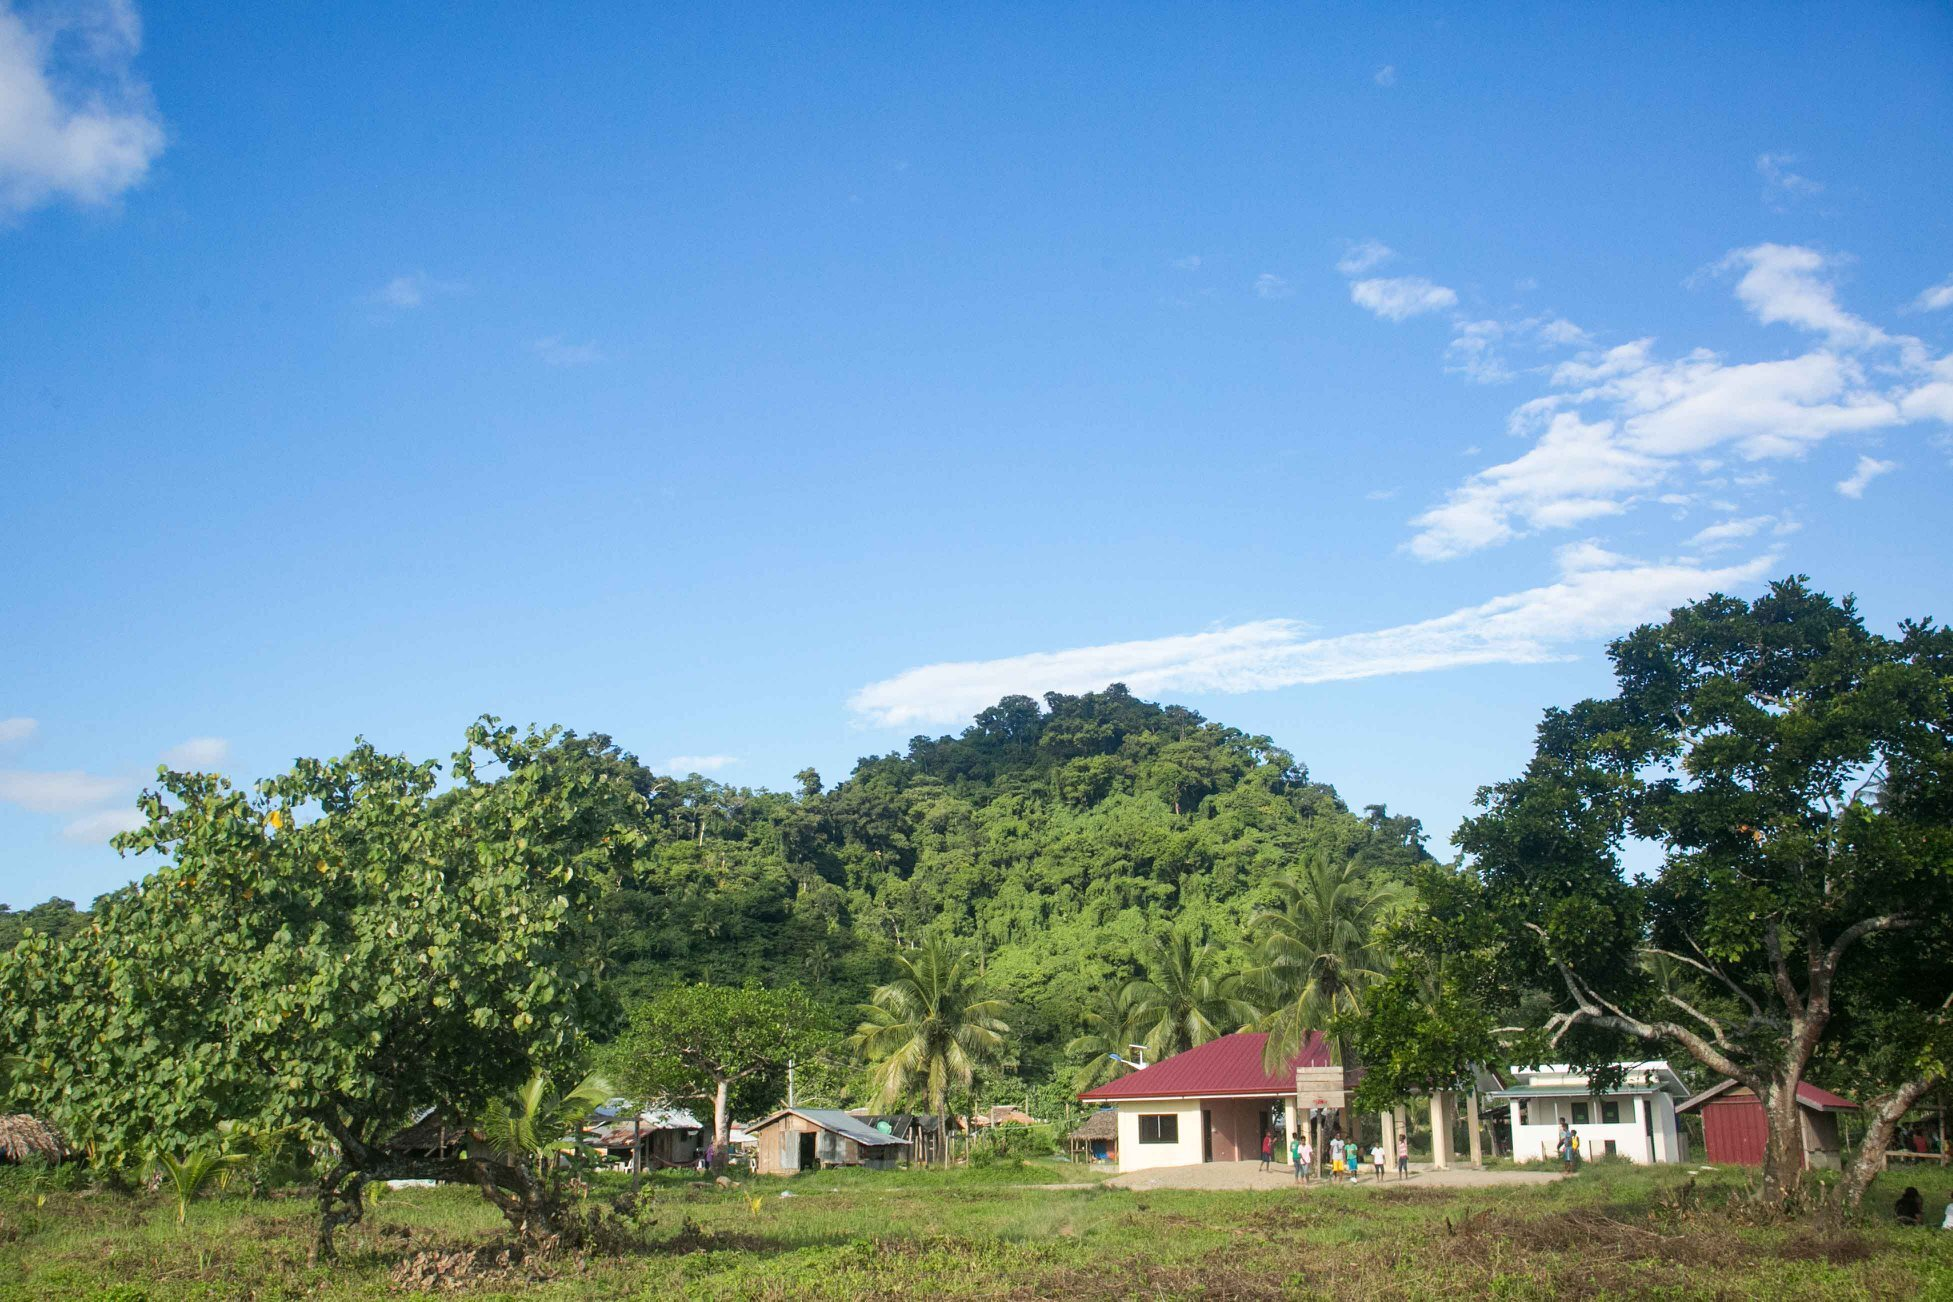 Present day image of the Agta village of Dupontian